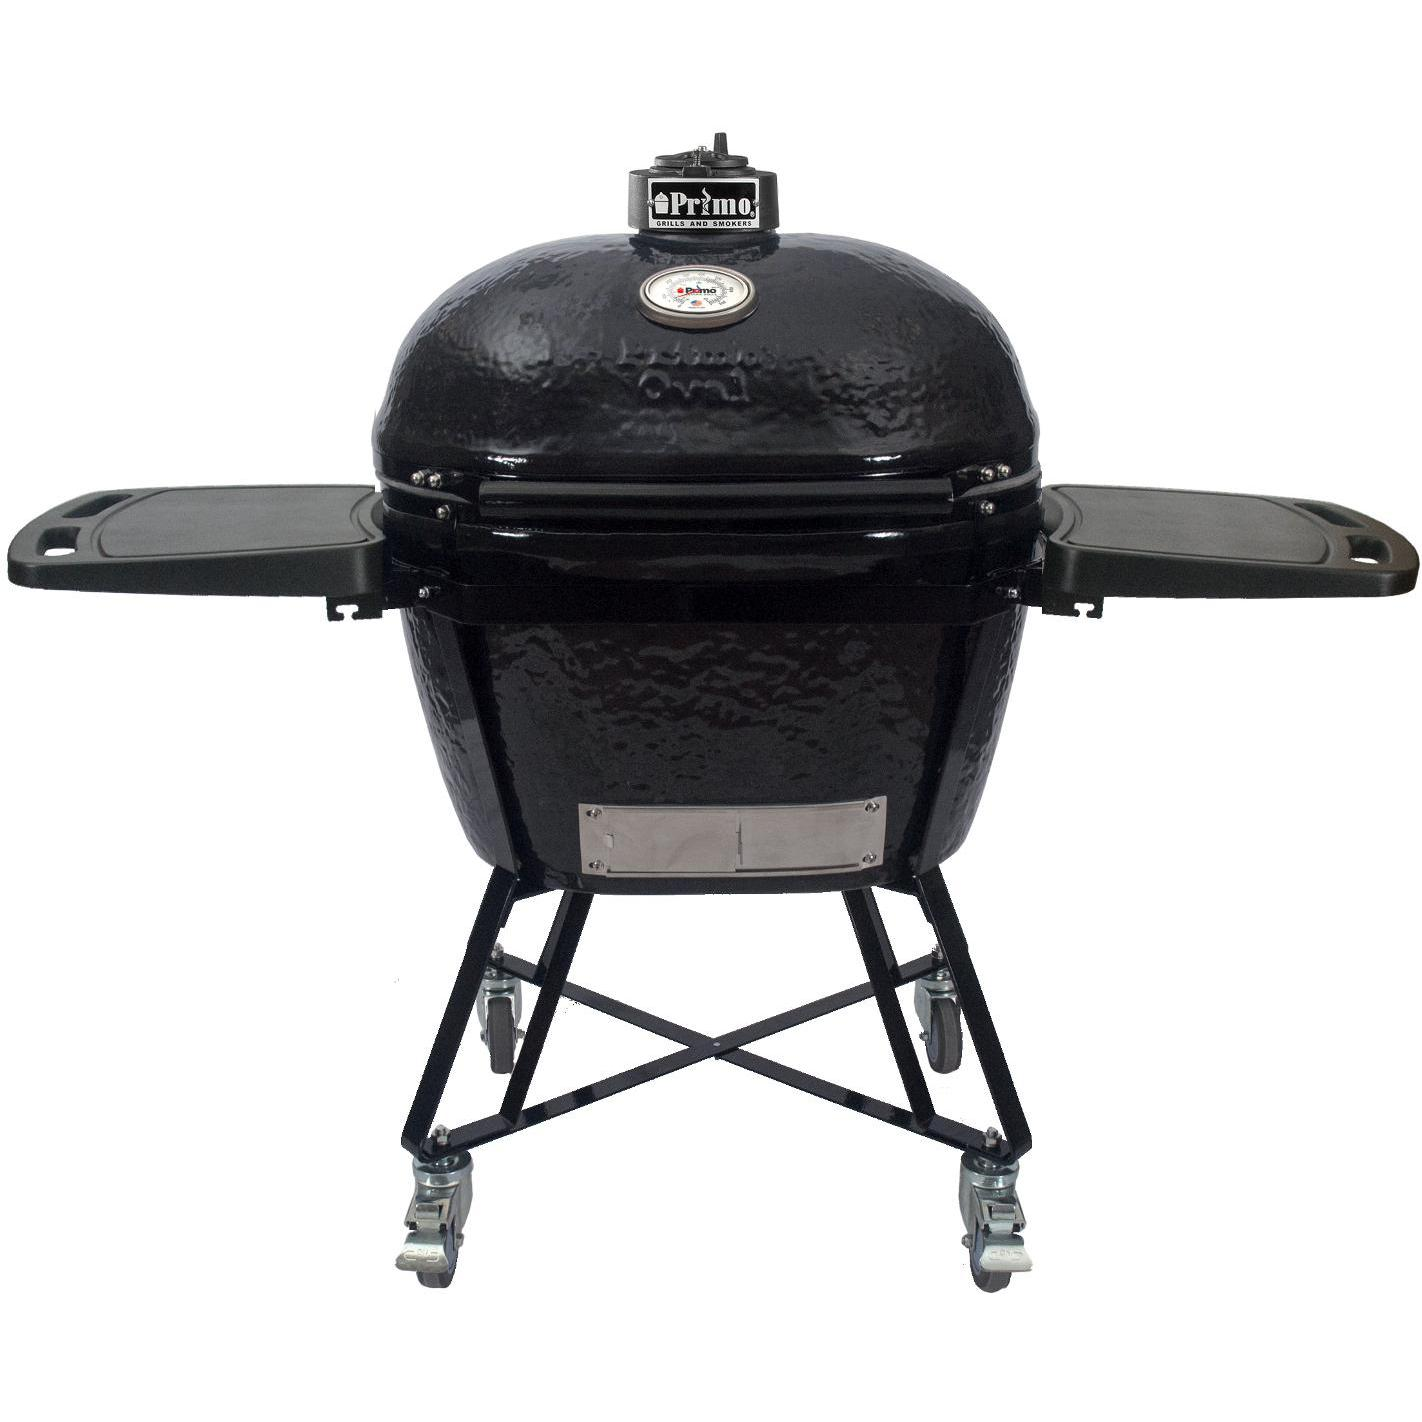 Primo All-In-One Oval XL Ceramic Kamado Grill With Cradle...